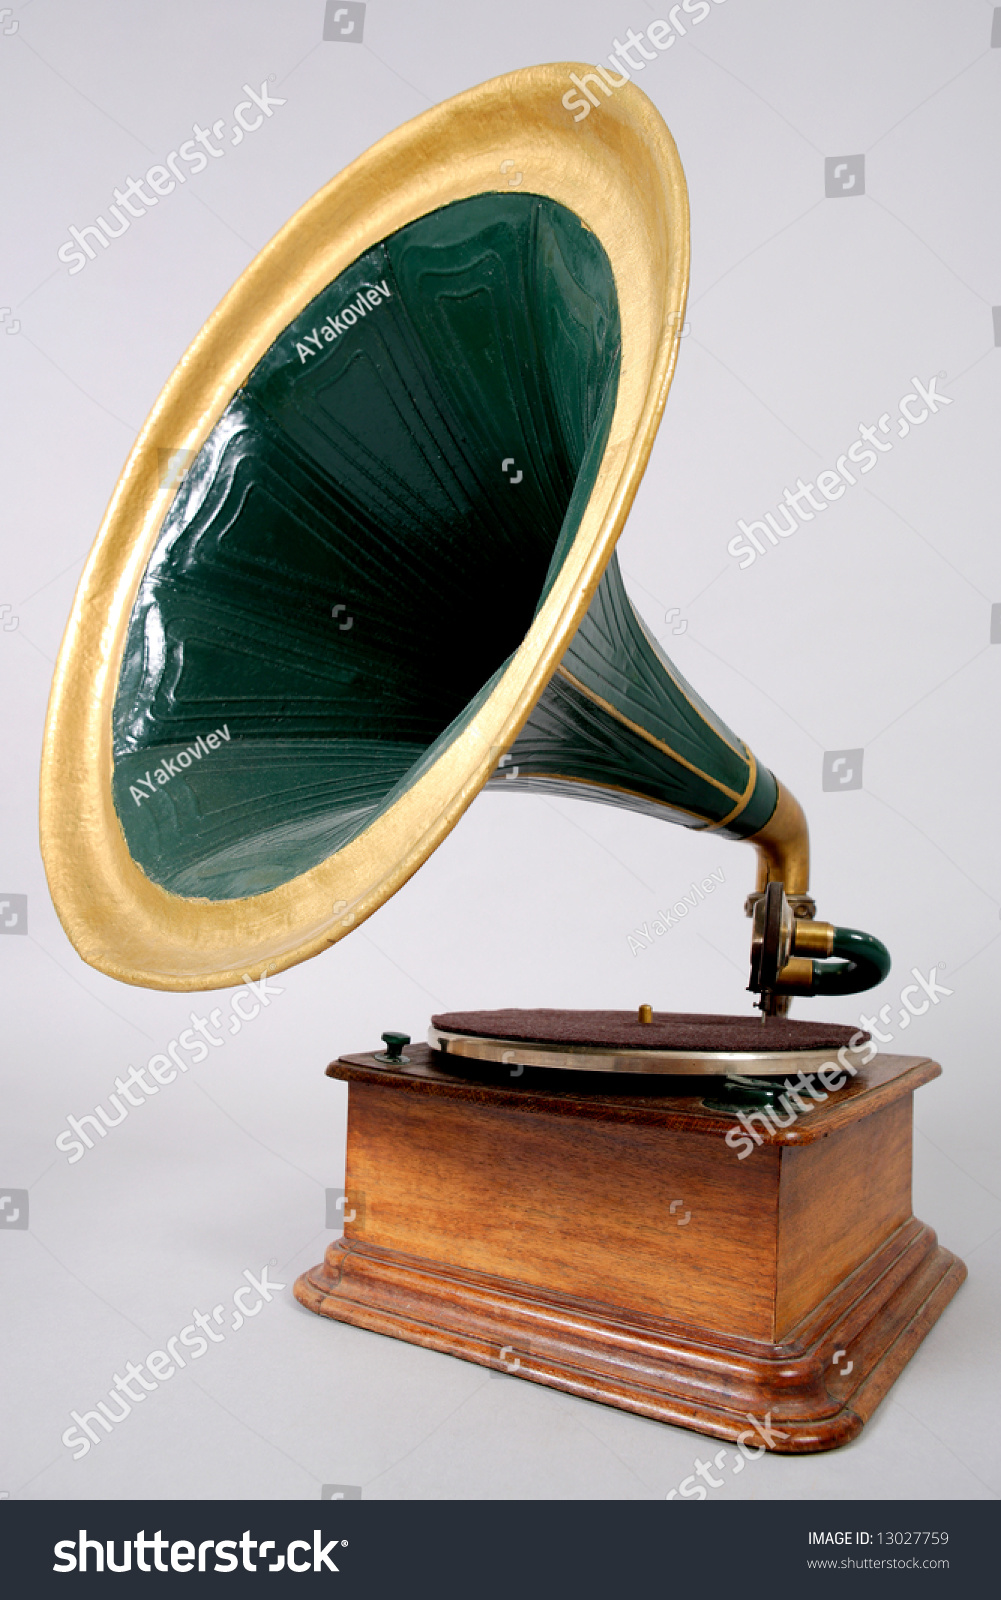 Retro vinyl player stock photo 13027759 shutterstock - Lecteur vinyle retro ...